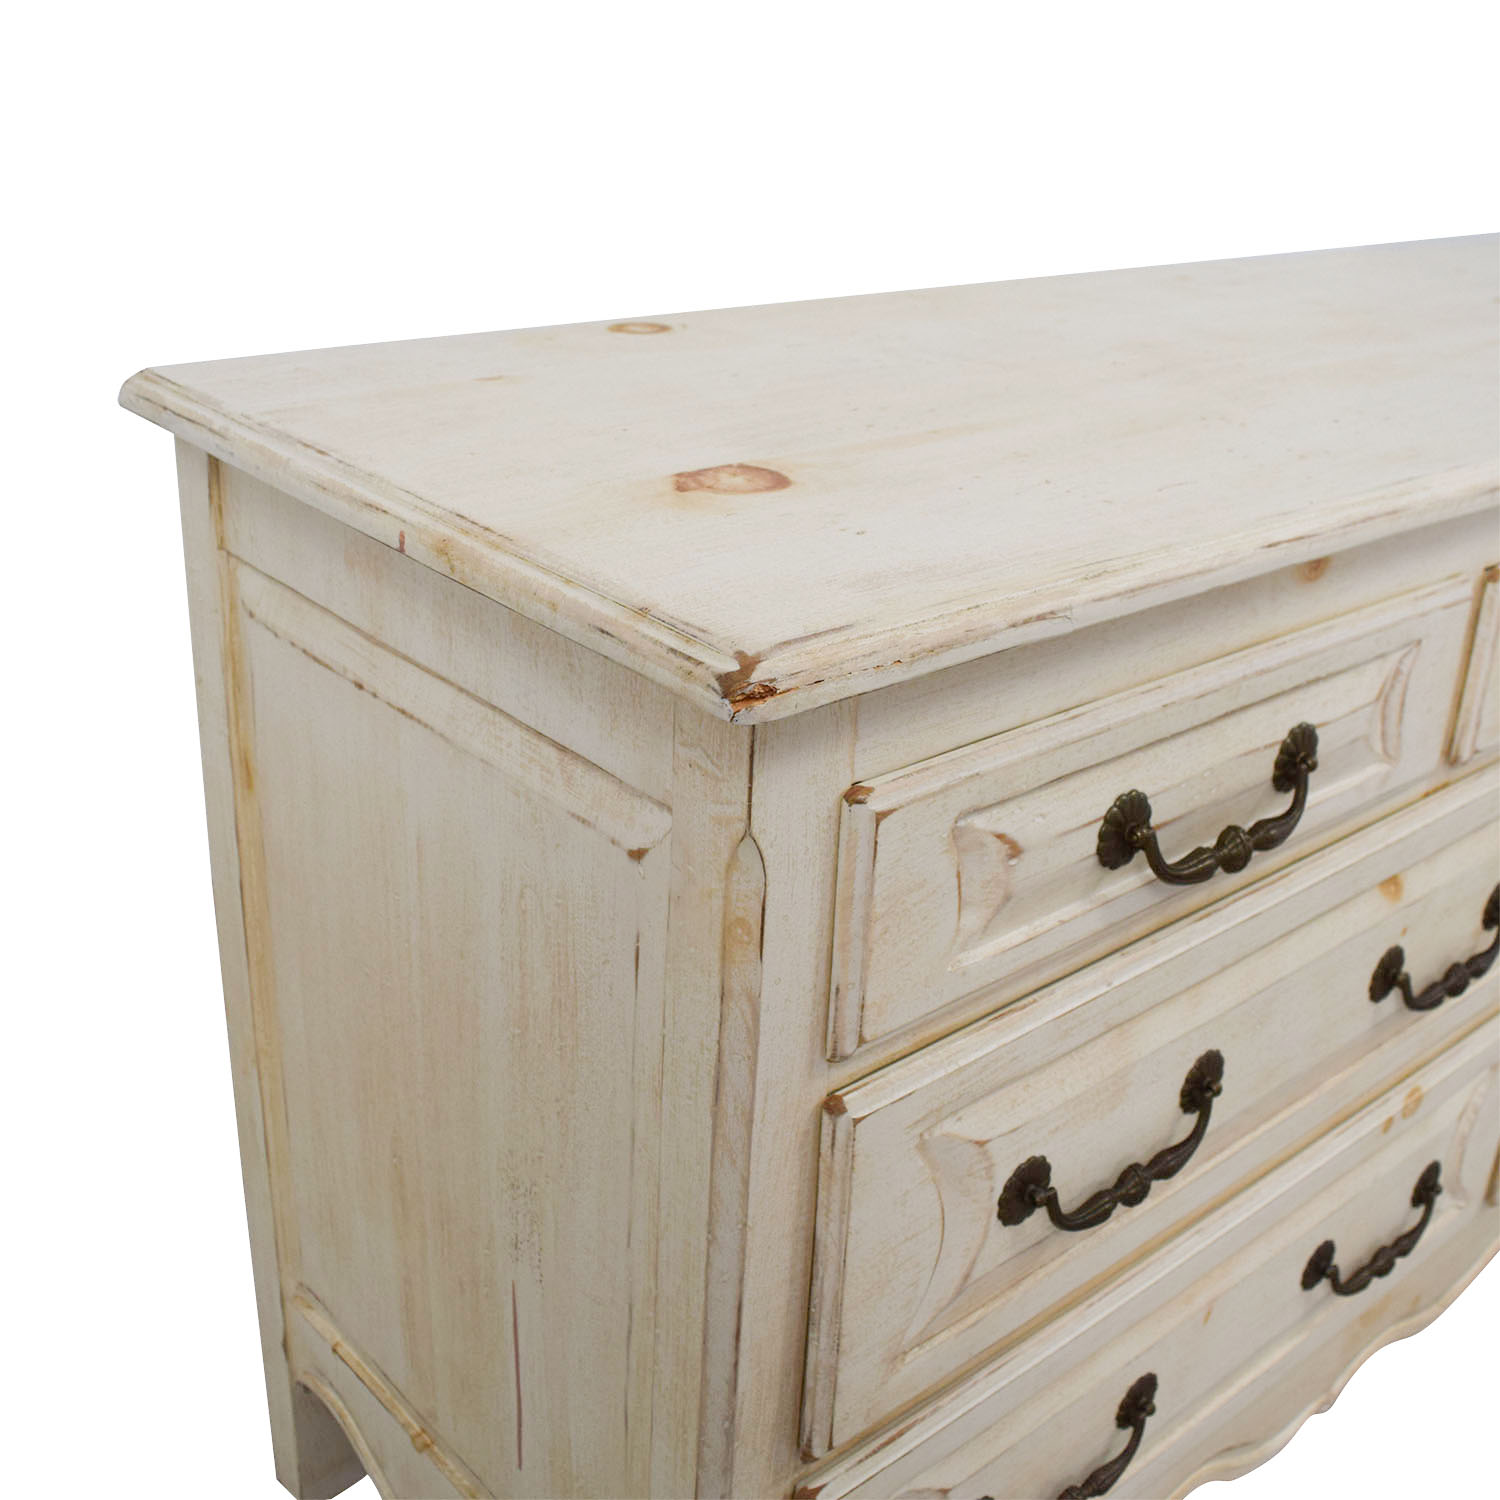 Habersham Plantation Habersham Plantation Distressed Seven-Drawer Distressed Cream Double Dresser dimensions